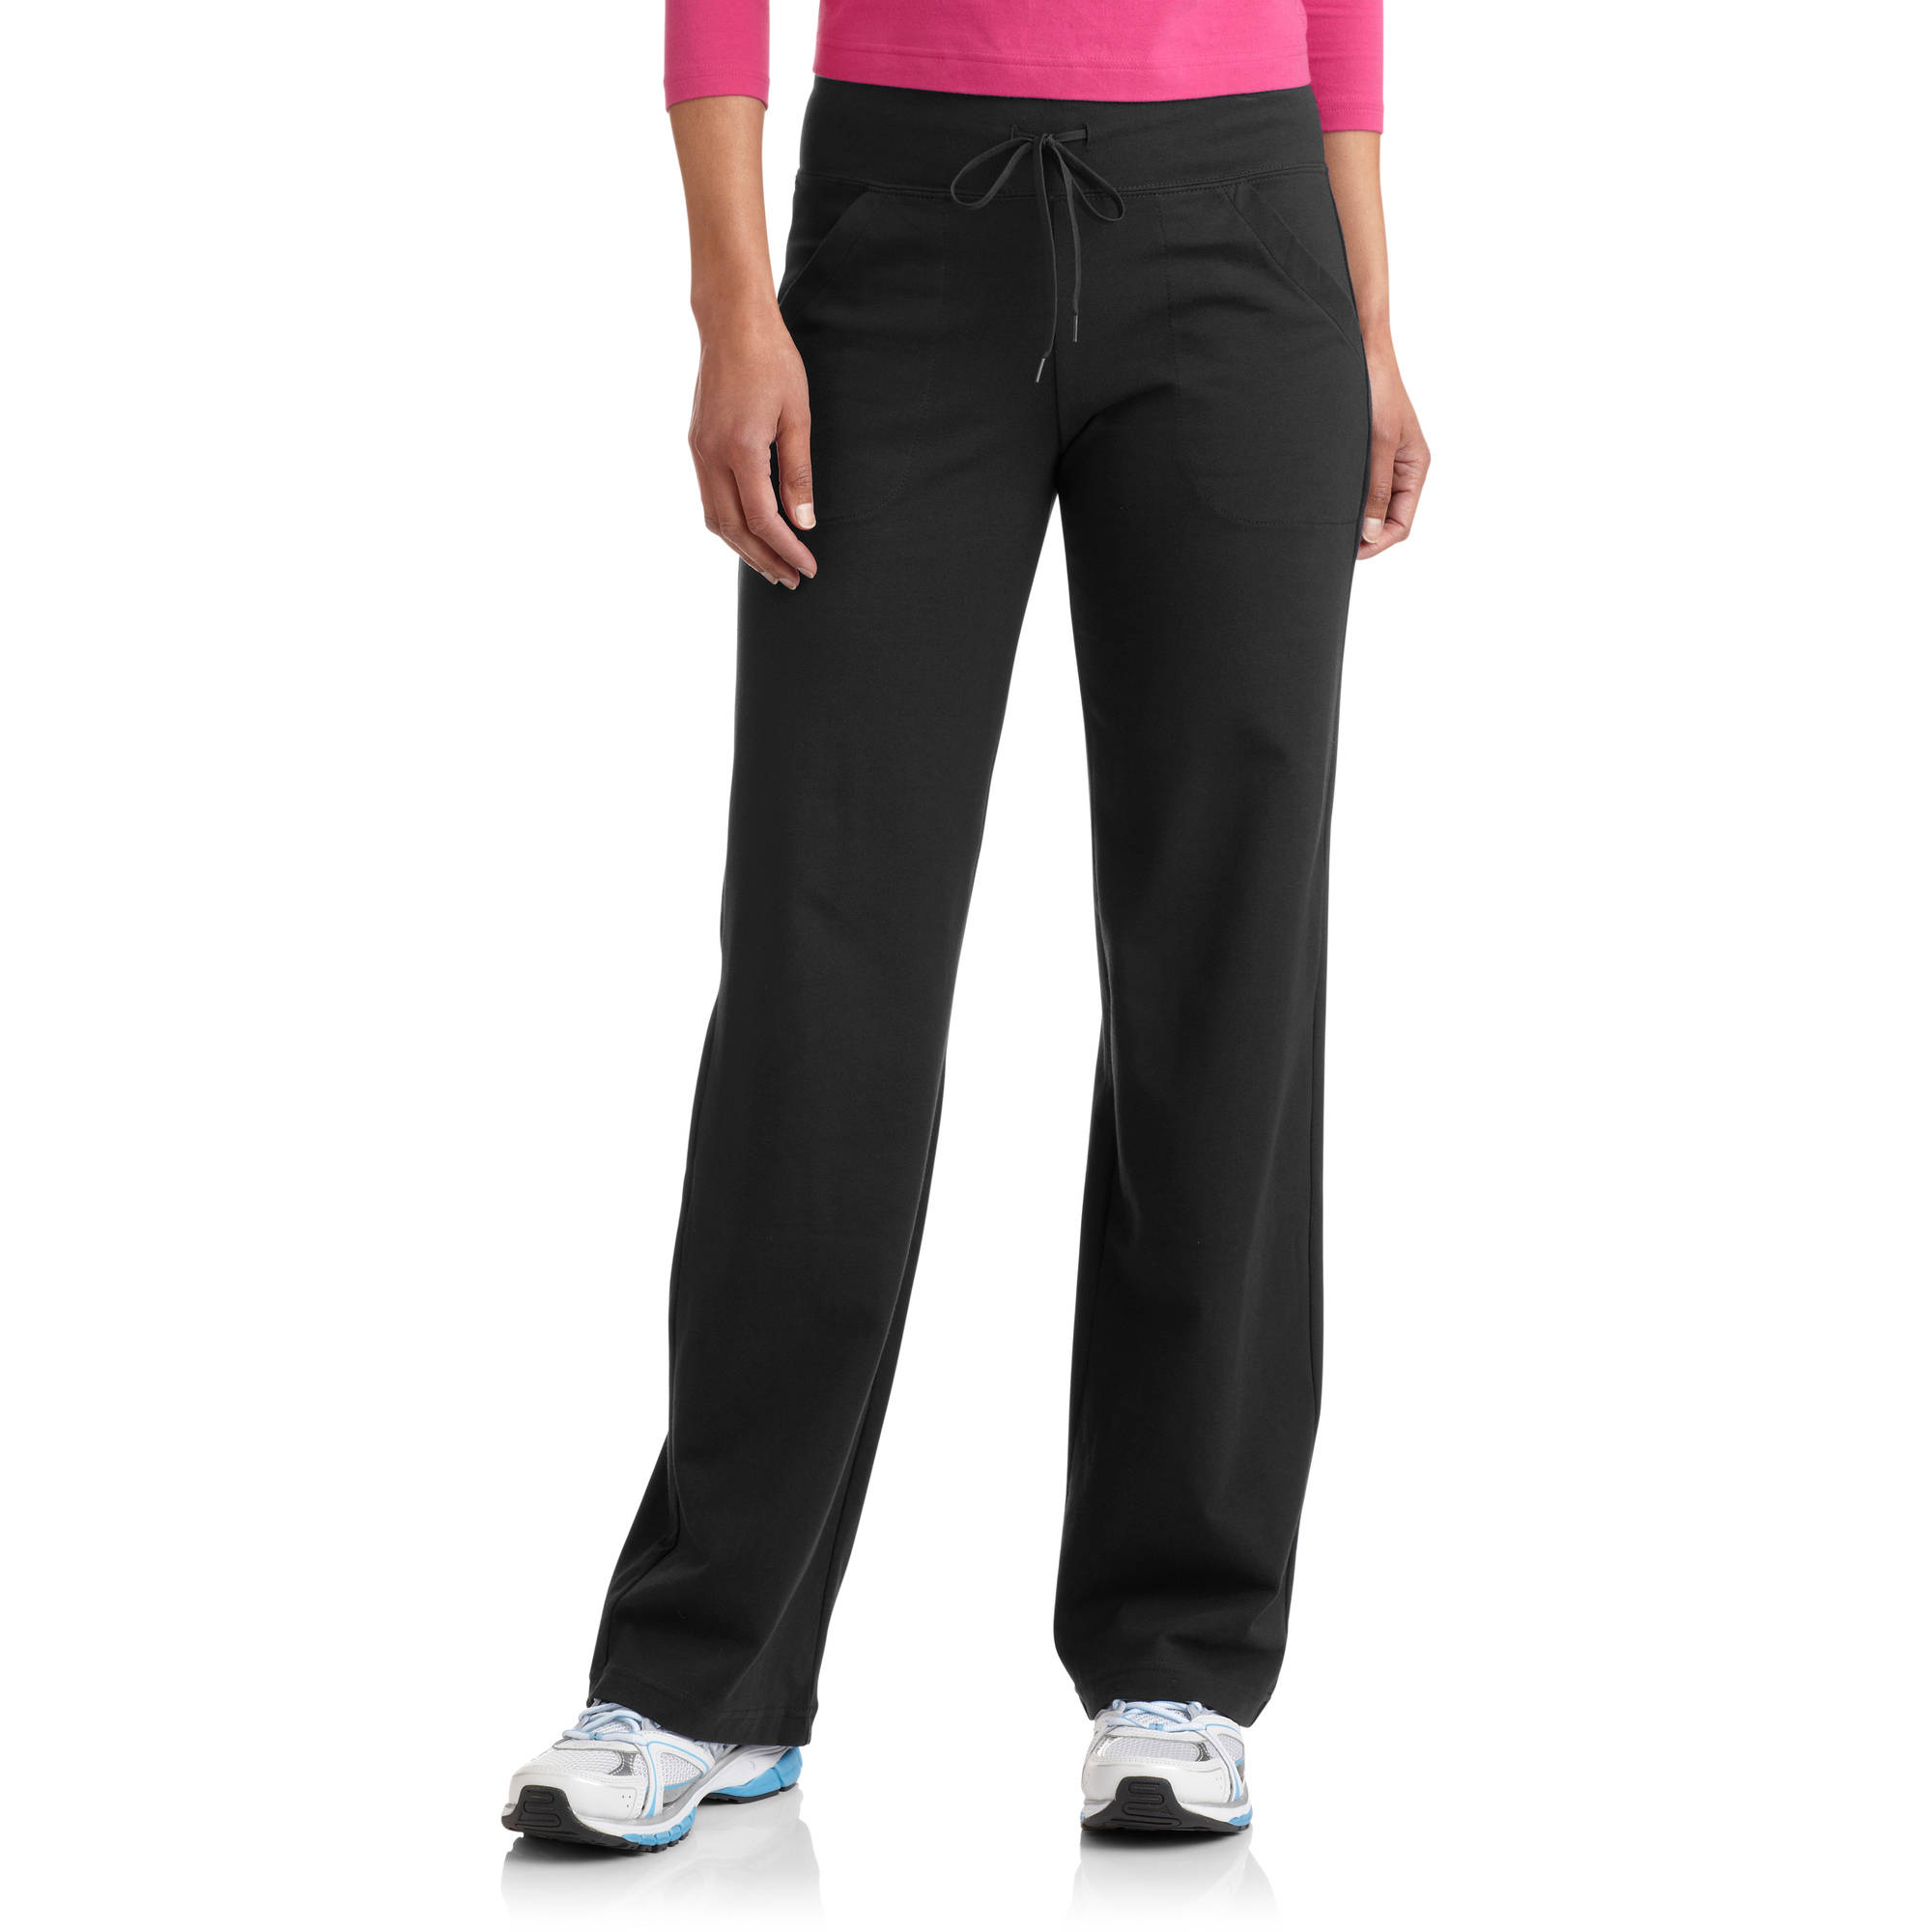 Danskin Now Women's Dri-More Core Relaxed Fit Yoga Pants available in Regular and Petite